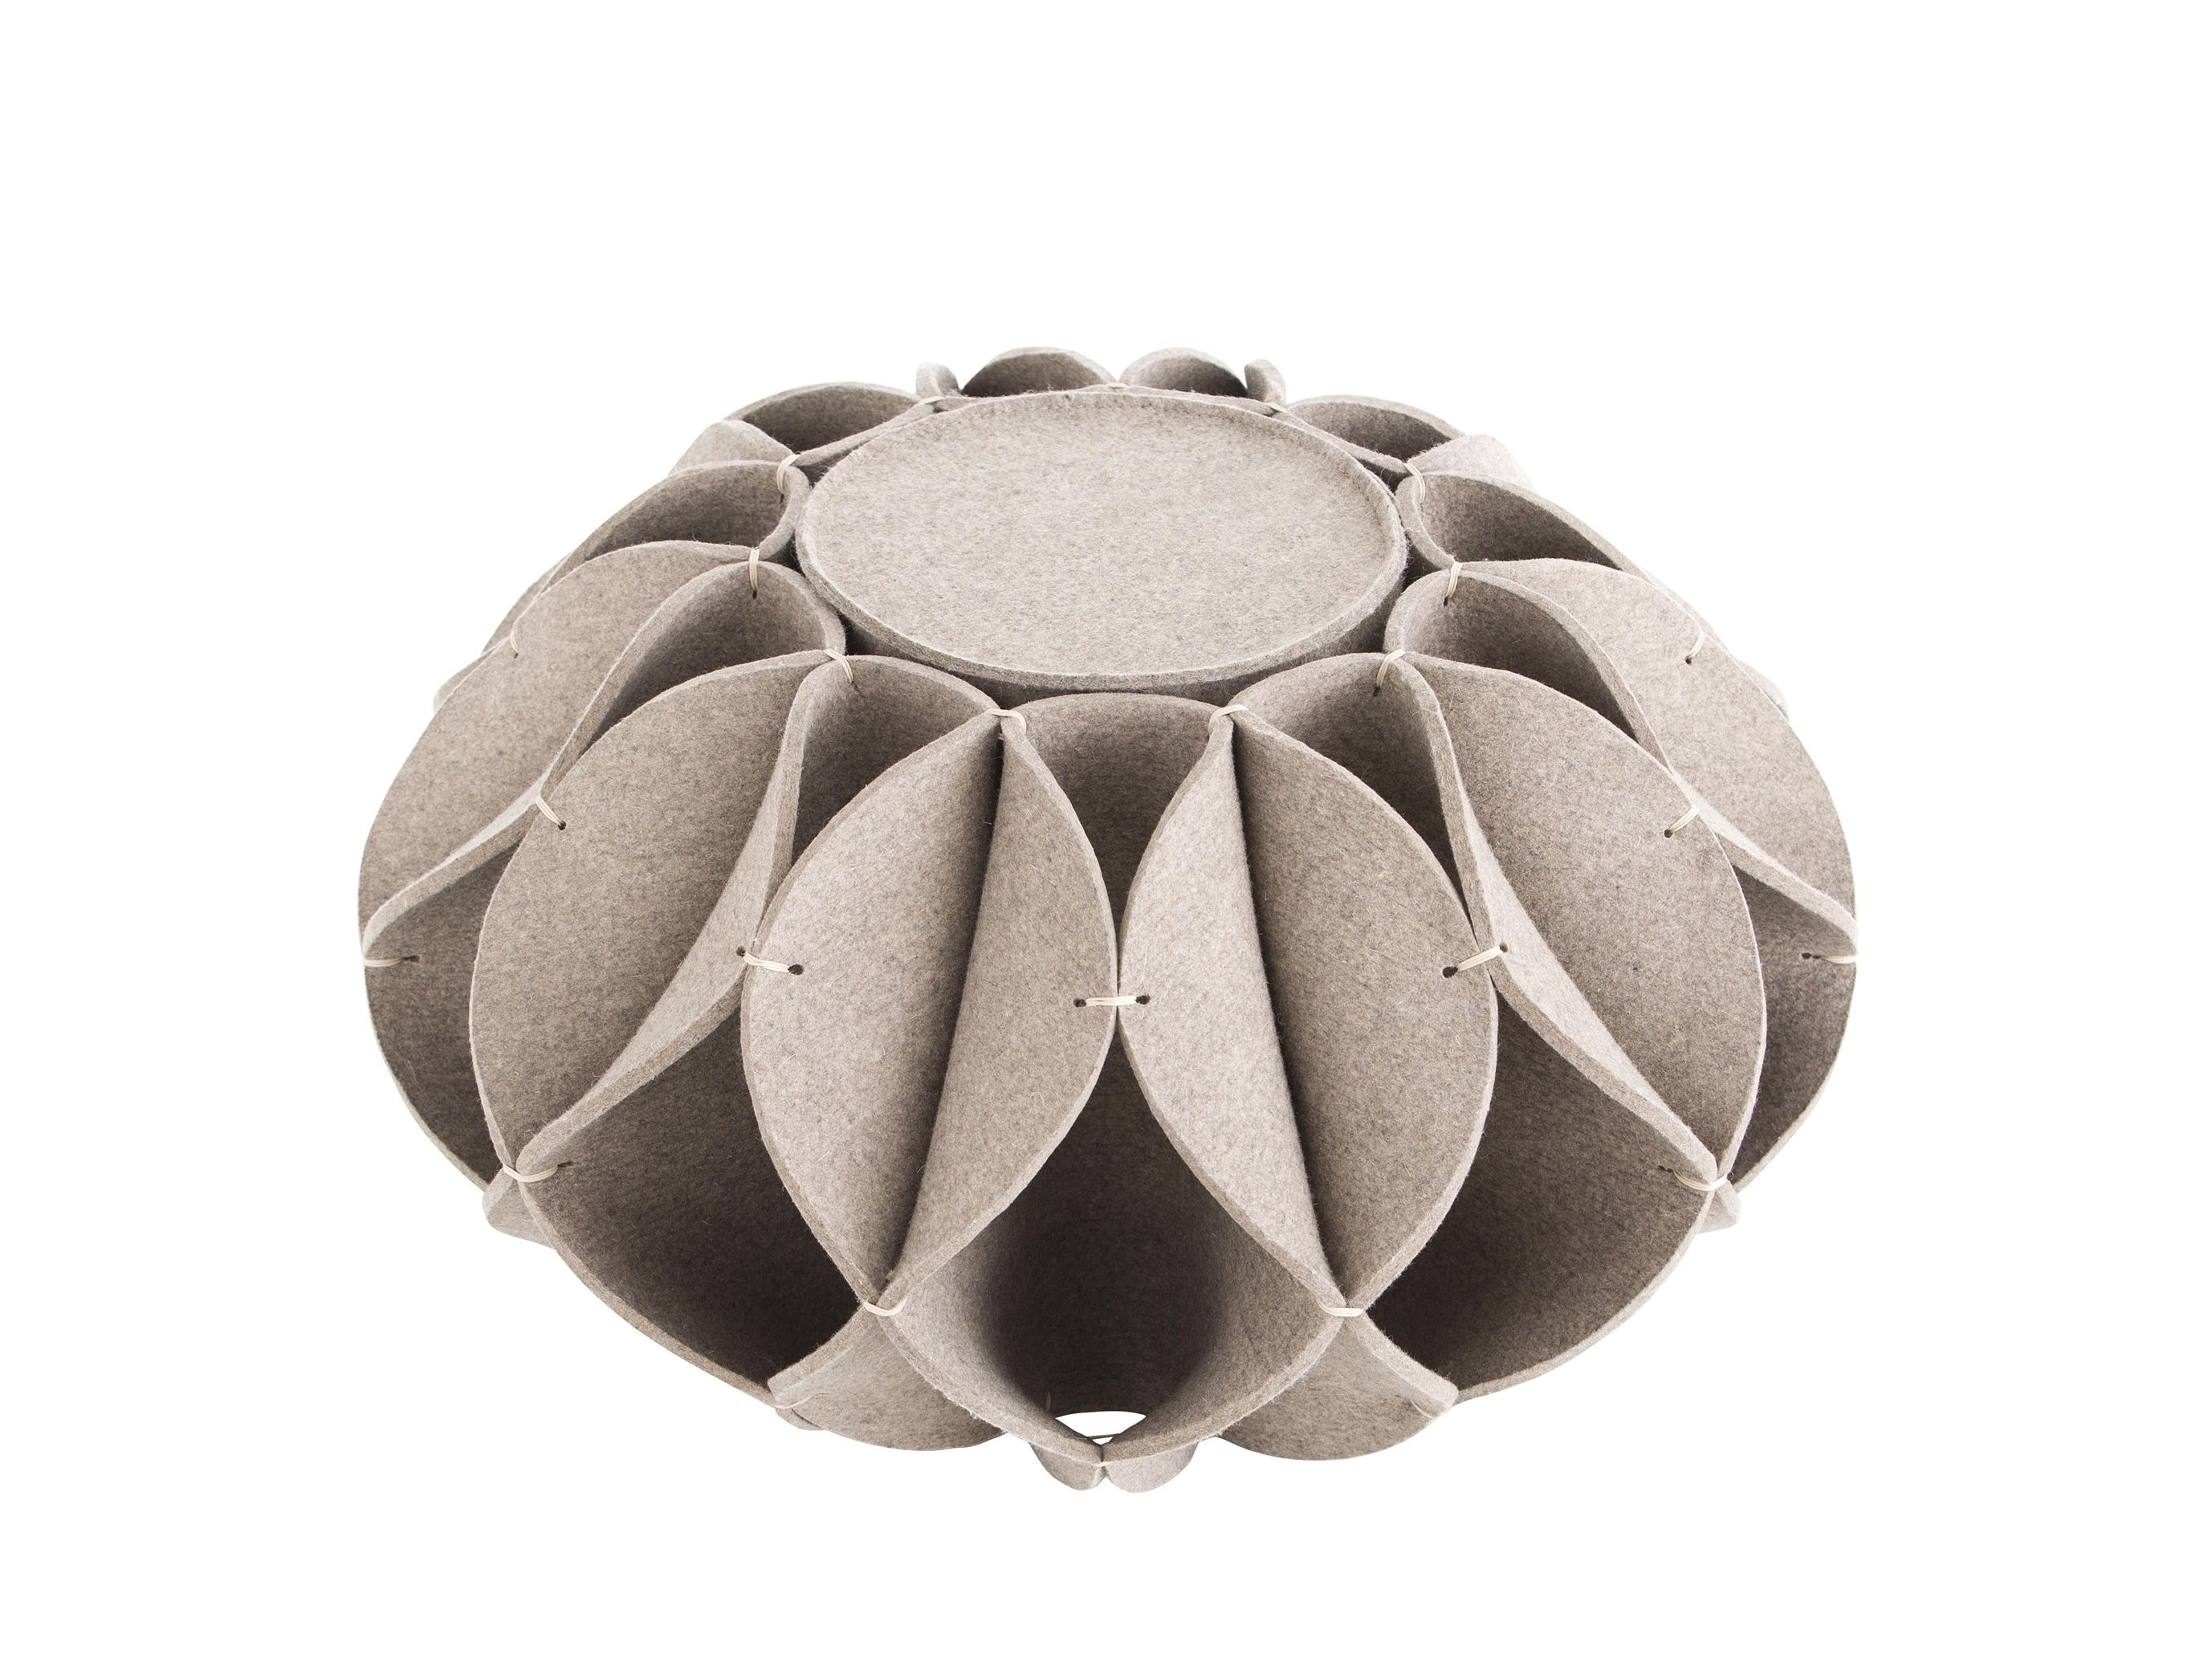 Wool felt pouf ruff pouf hight ruff pouf collection by gan design romero vallejo - Design pouf ...